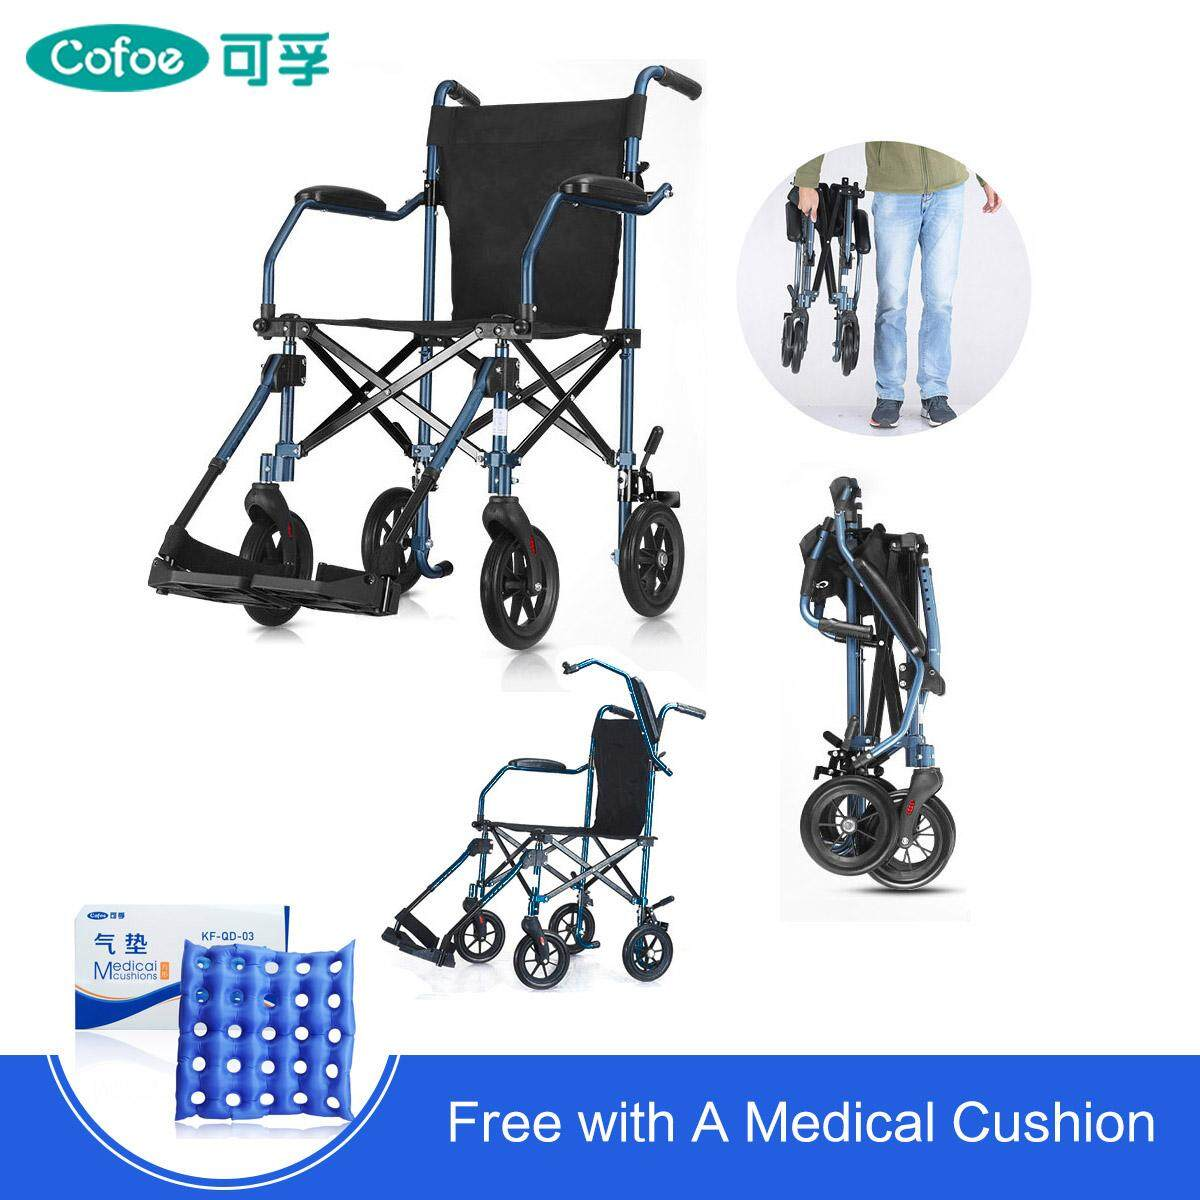 Cofoe Foldable Elderly Wheelchair Aluminum Compact Lightweight Wheel Chair With Foot Board Removable Trolley Cart Travel Walker Rollator Free Anti-Decubitus Cushion By Cofoe Official Store.